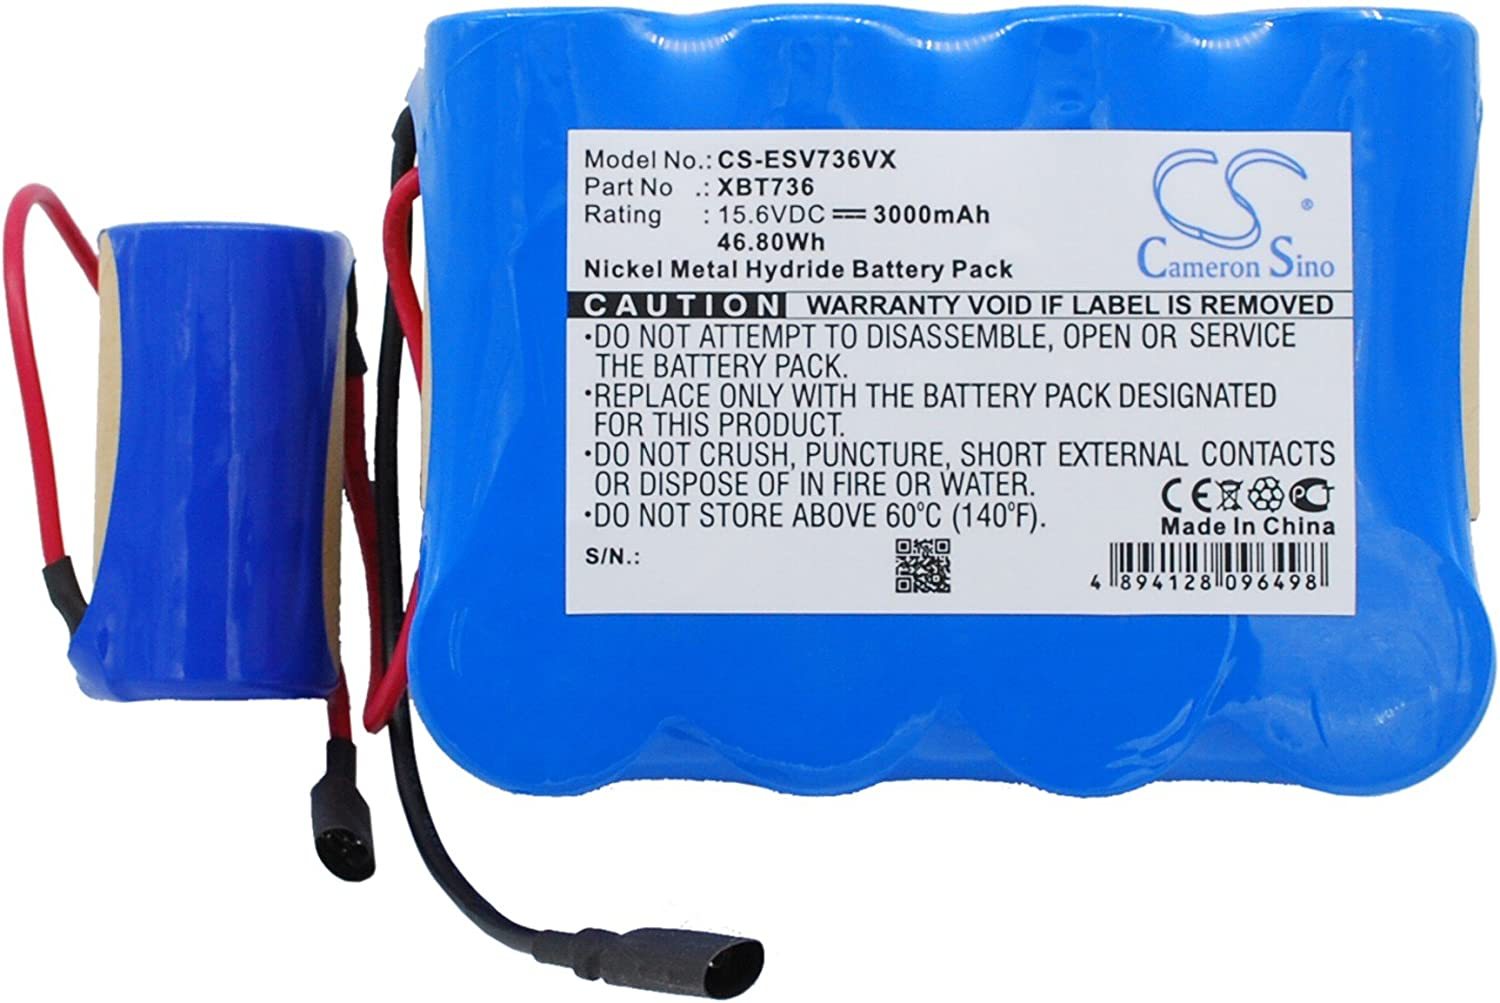 3000mAh 46.80Wh Ni-MH Replacement Philadelphia Mall Battery Max 90% OFF Shark SV7 SV736 for